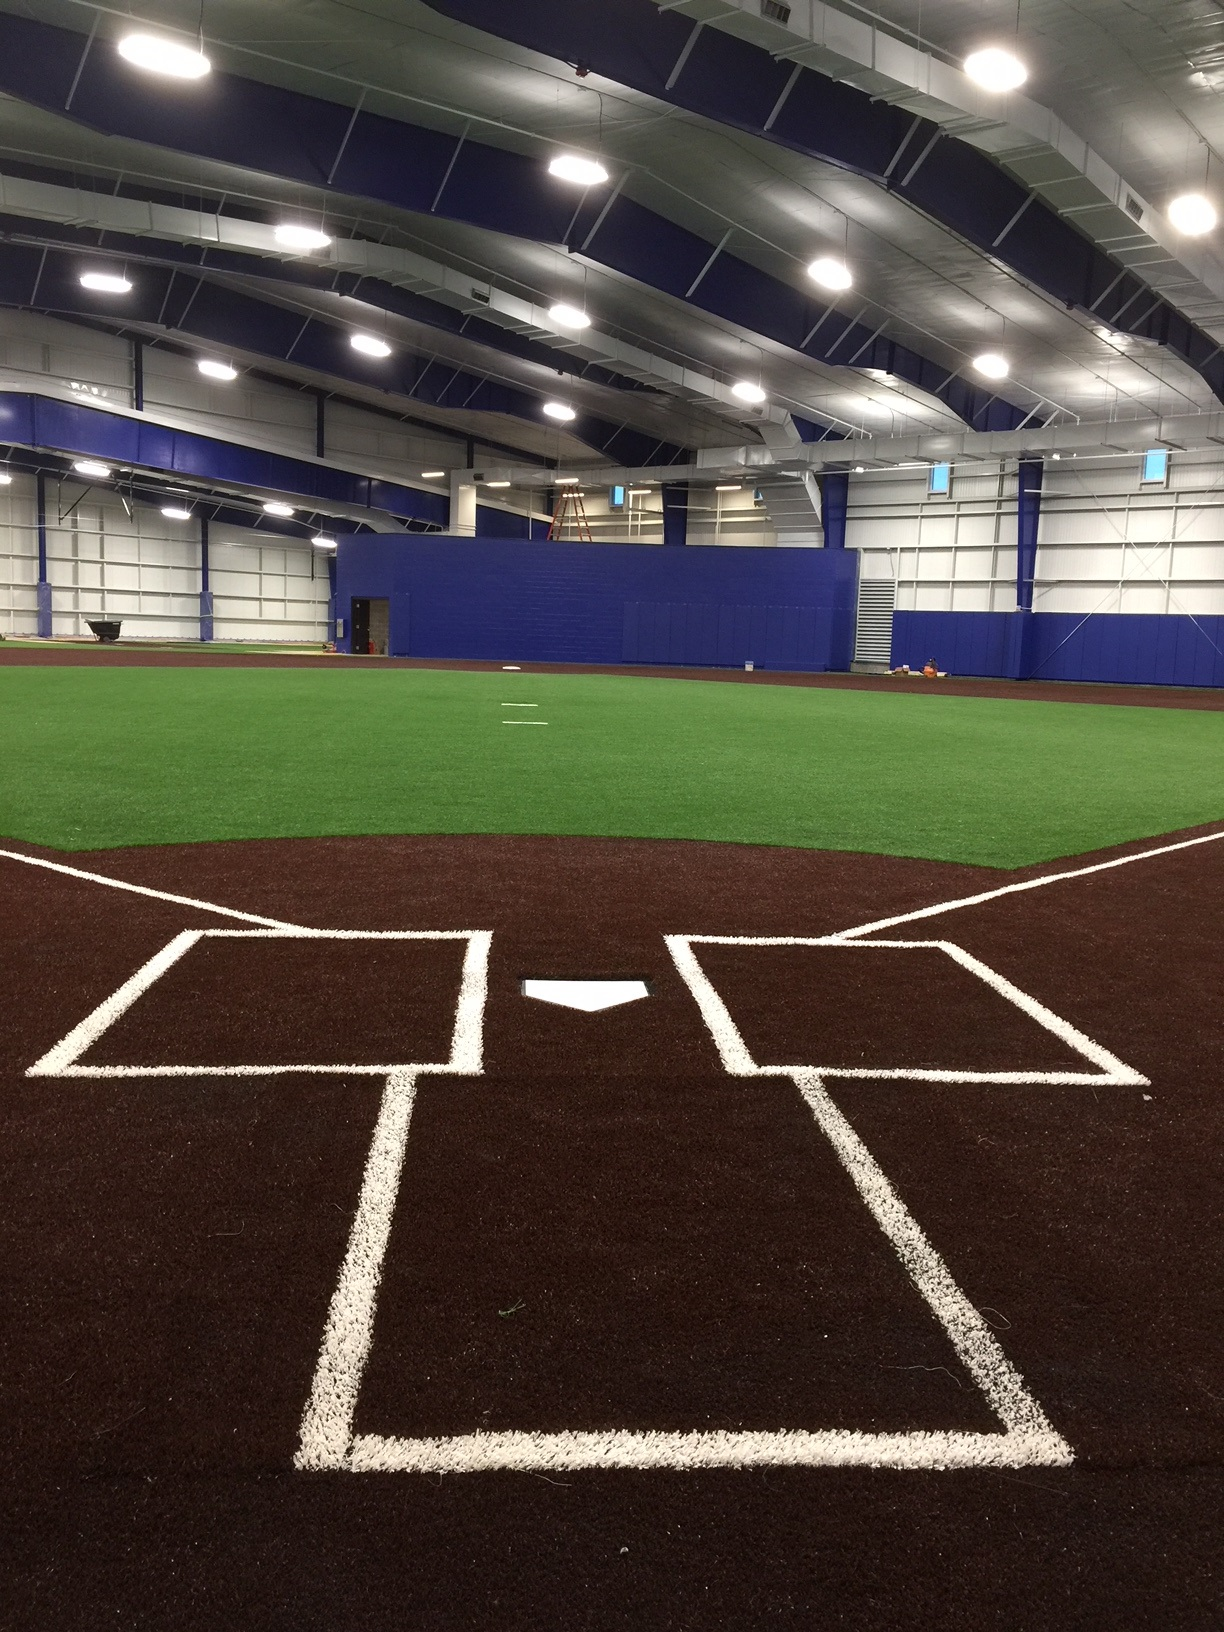 mlb youth baseball academy in kansas city